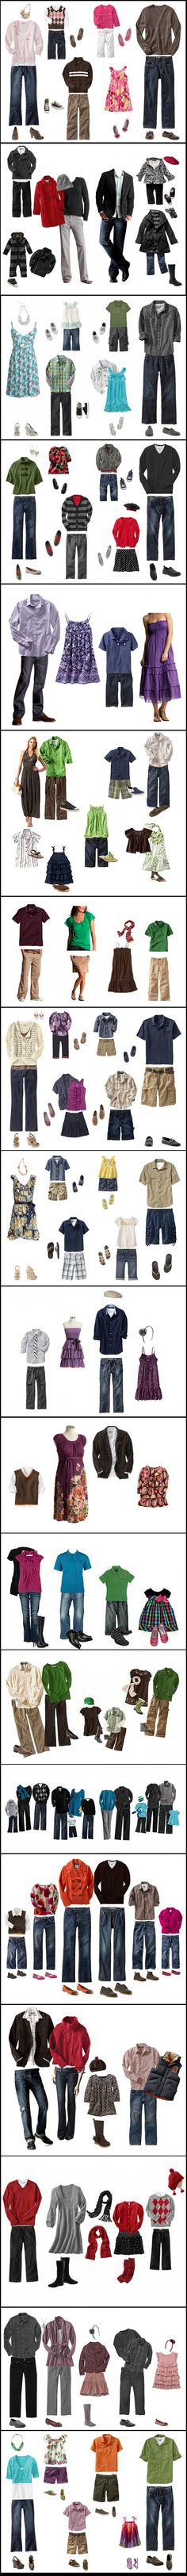 More photo shoot outfit ideas